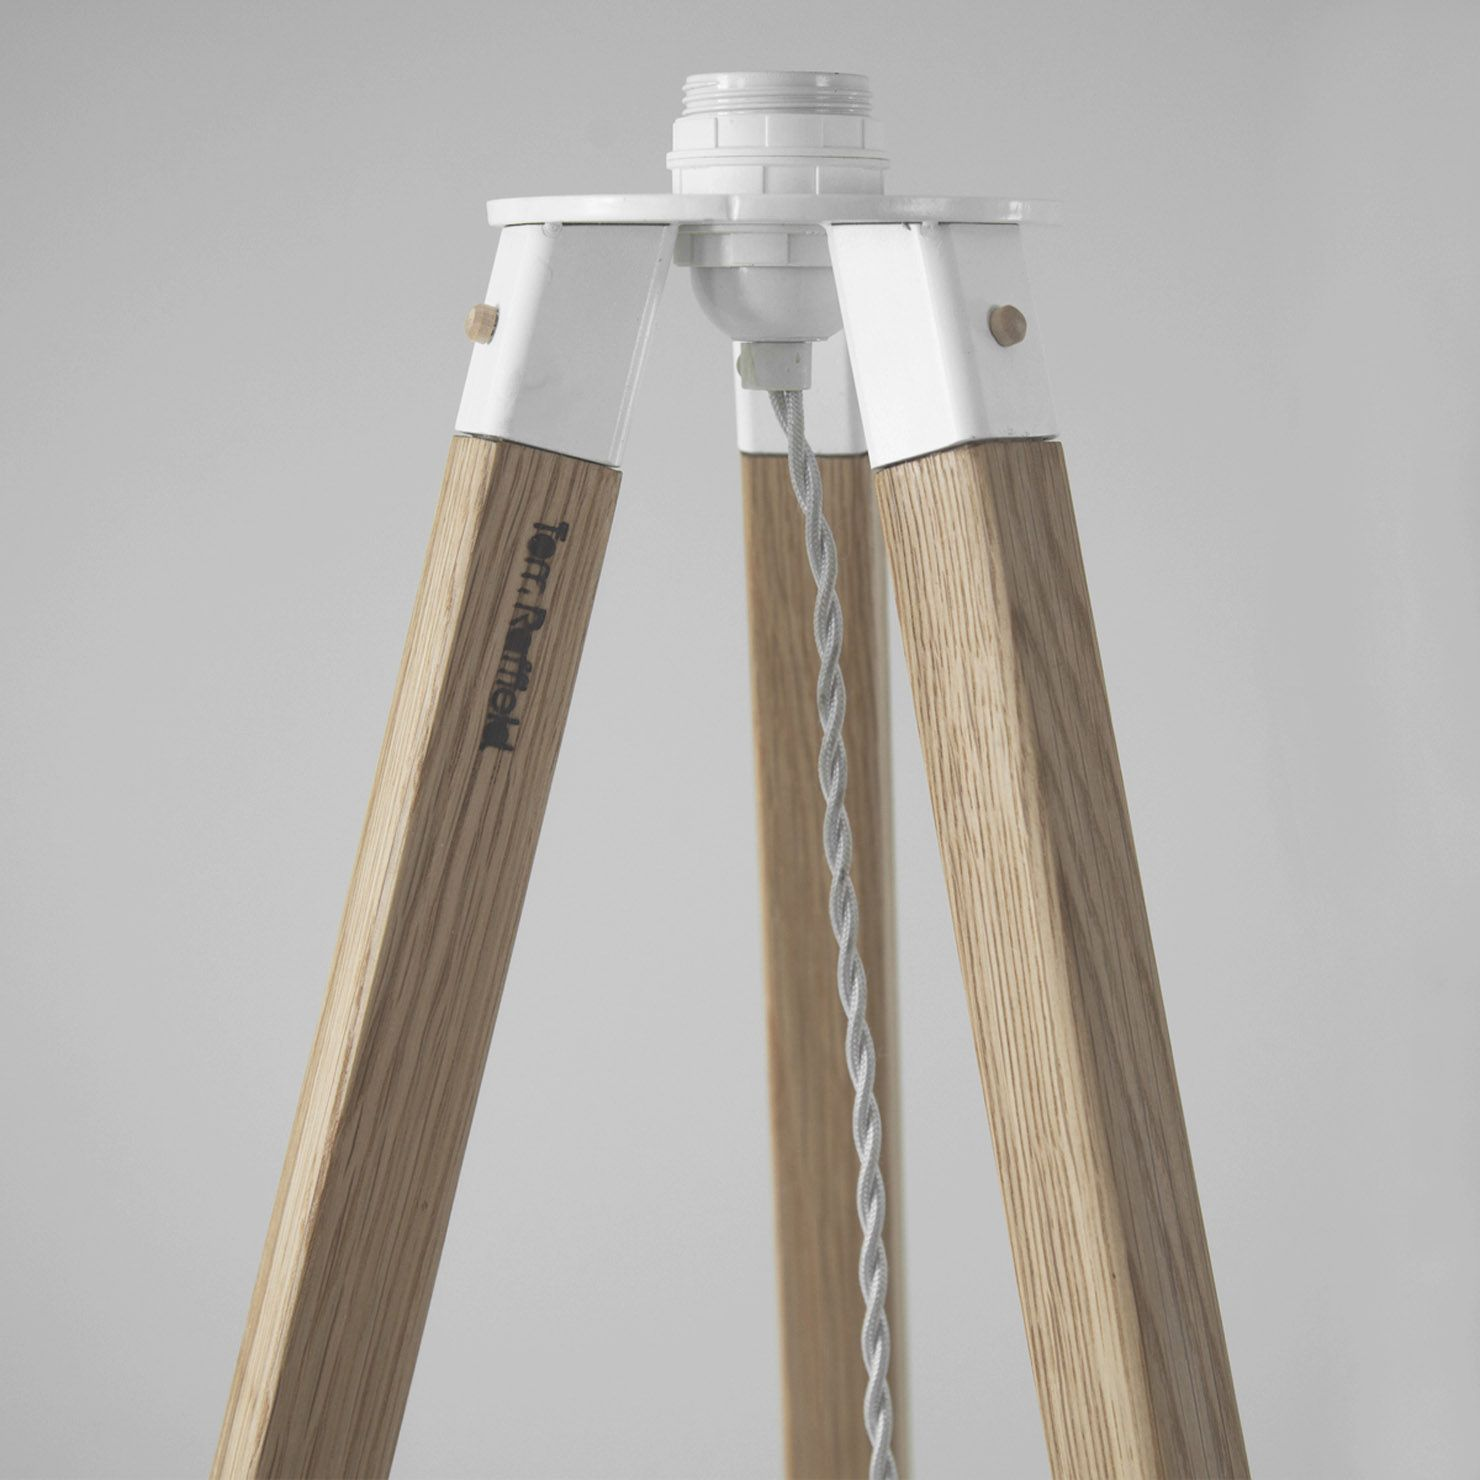 Tom Raffield Wooden Tripod In Ash Wooden Lamps Design Diy Floor Lamp Wood Lamp Design